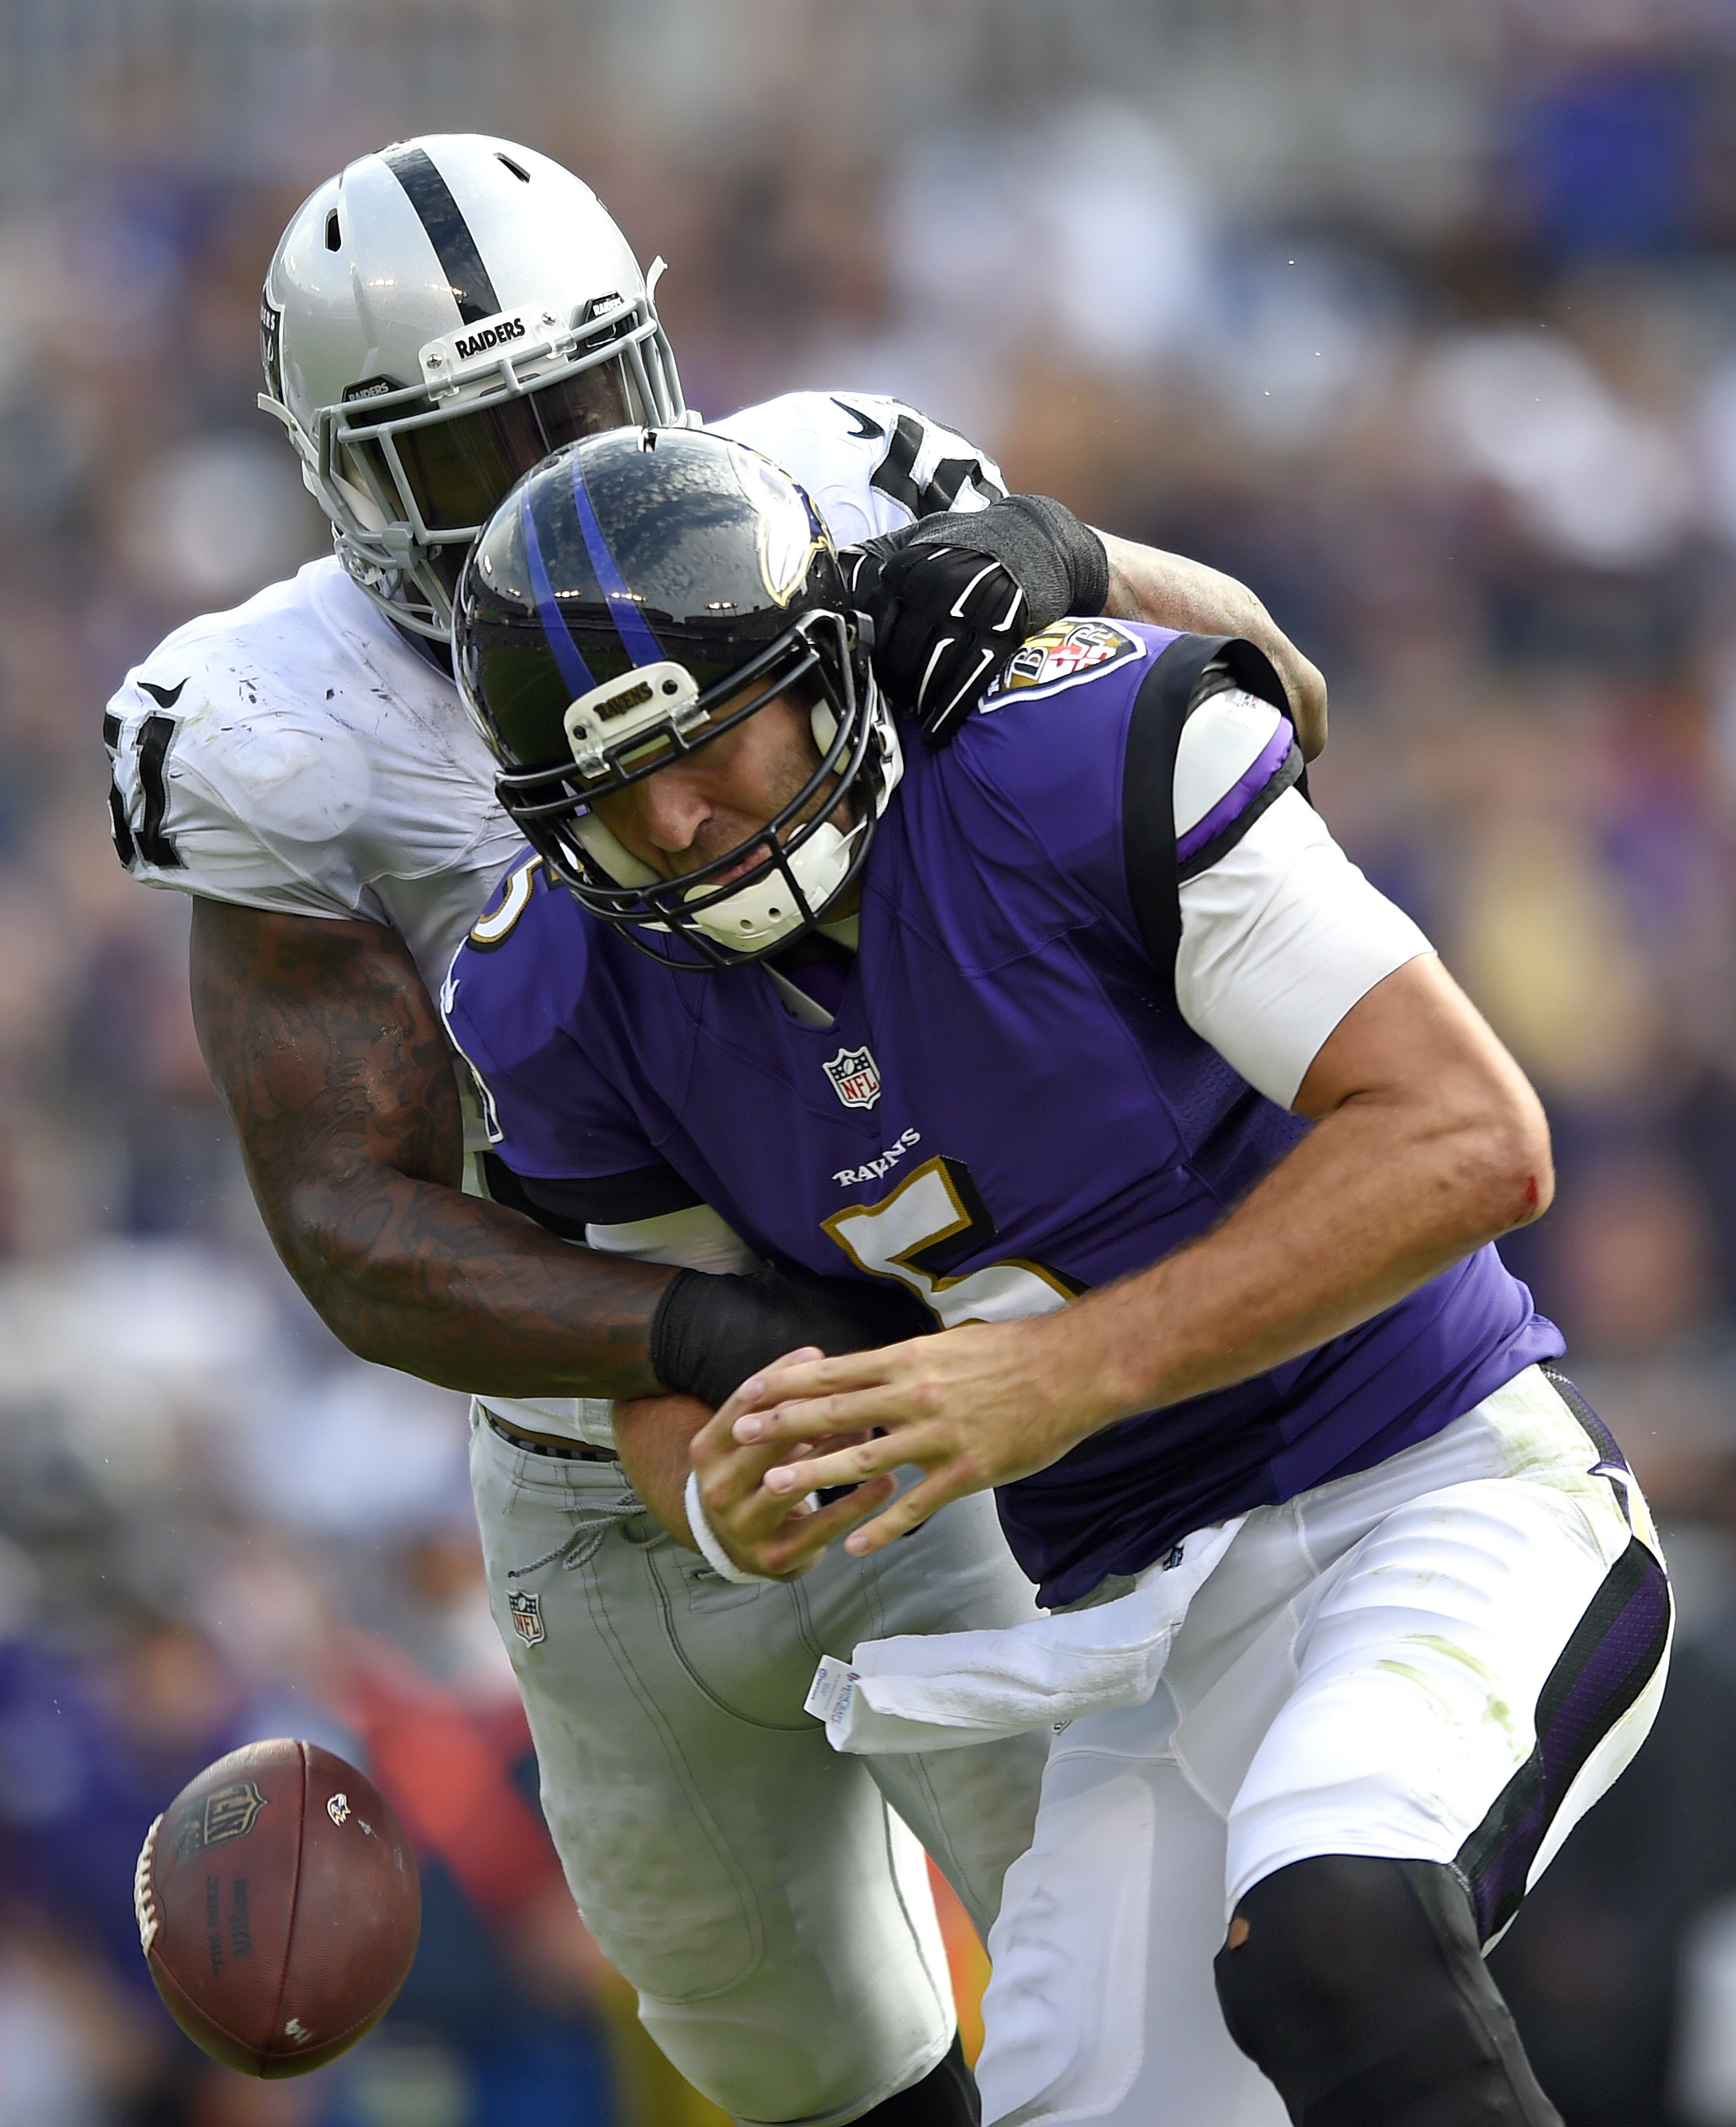 Baltimore Ravens quarterback Joe Flacco (5) fumbles the ball as he is sacked by Oakland Raiders outside linebacker Bruce Irvin in the second half of an NFL football game, Sunday, Oct. 2, 2016, in Baltimore. Oakland recovered the ball on the play. (AP Phot